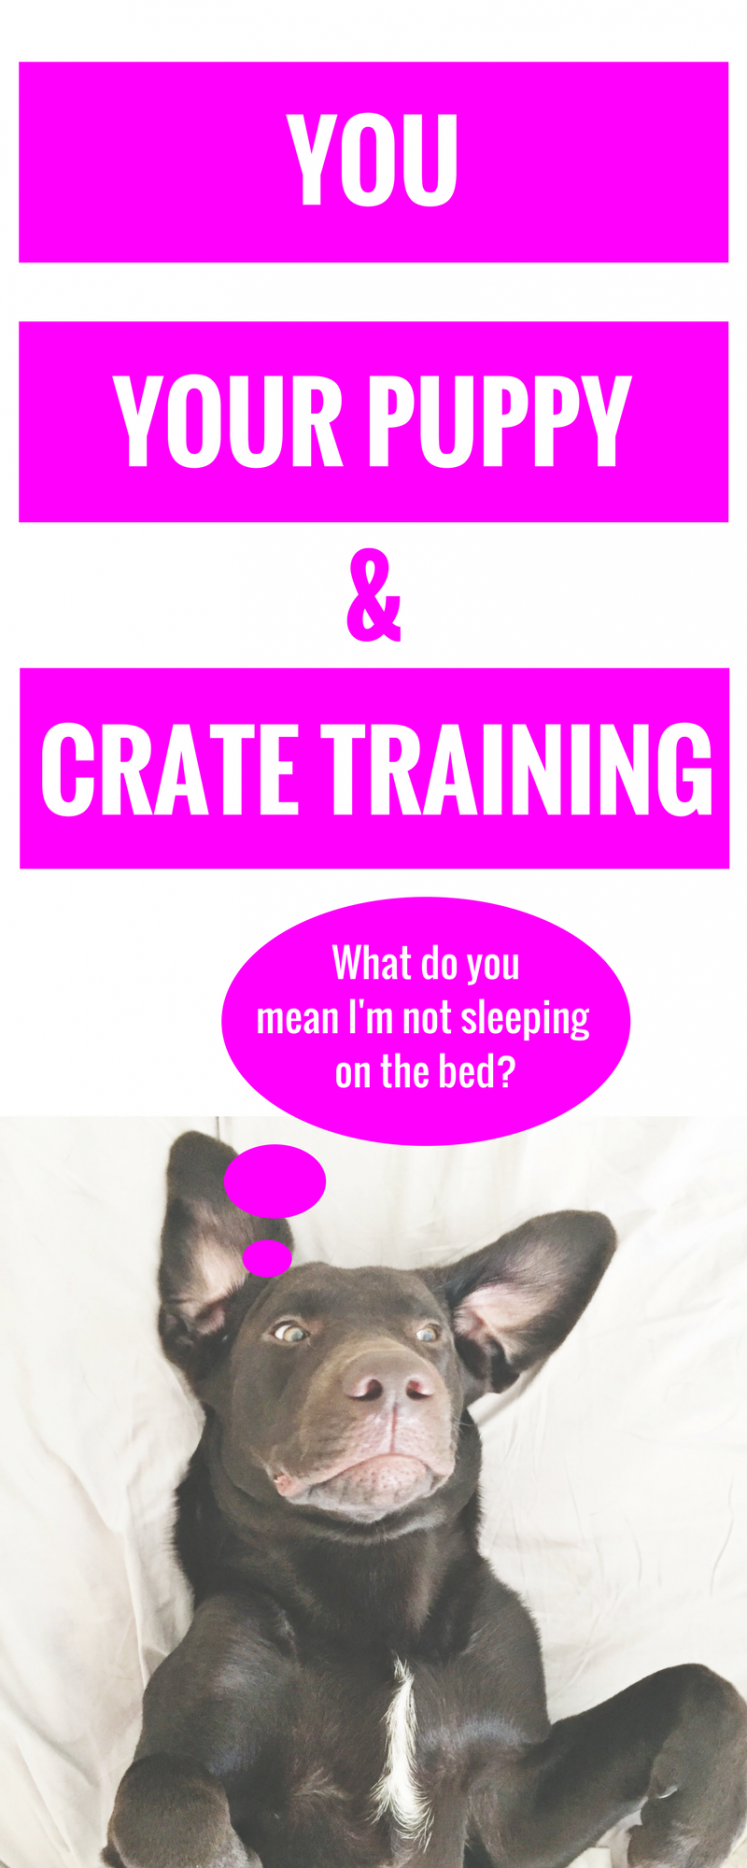 You, Your Puppy + Crate Training